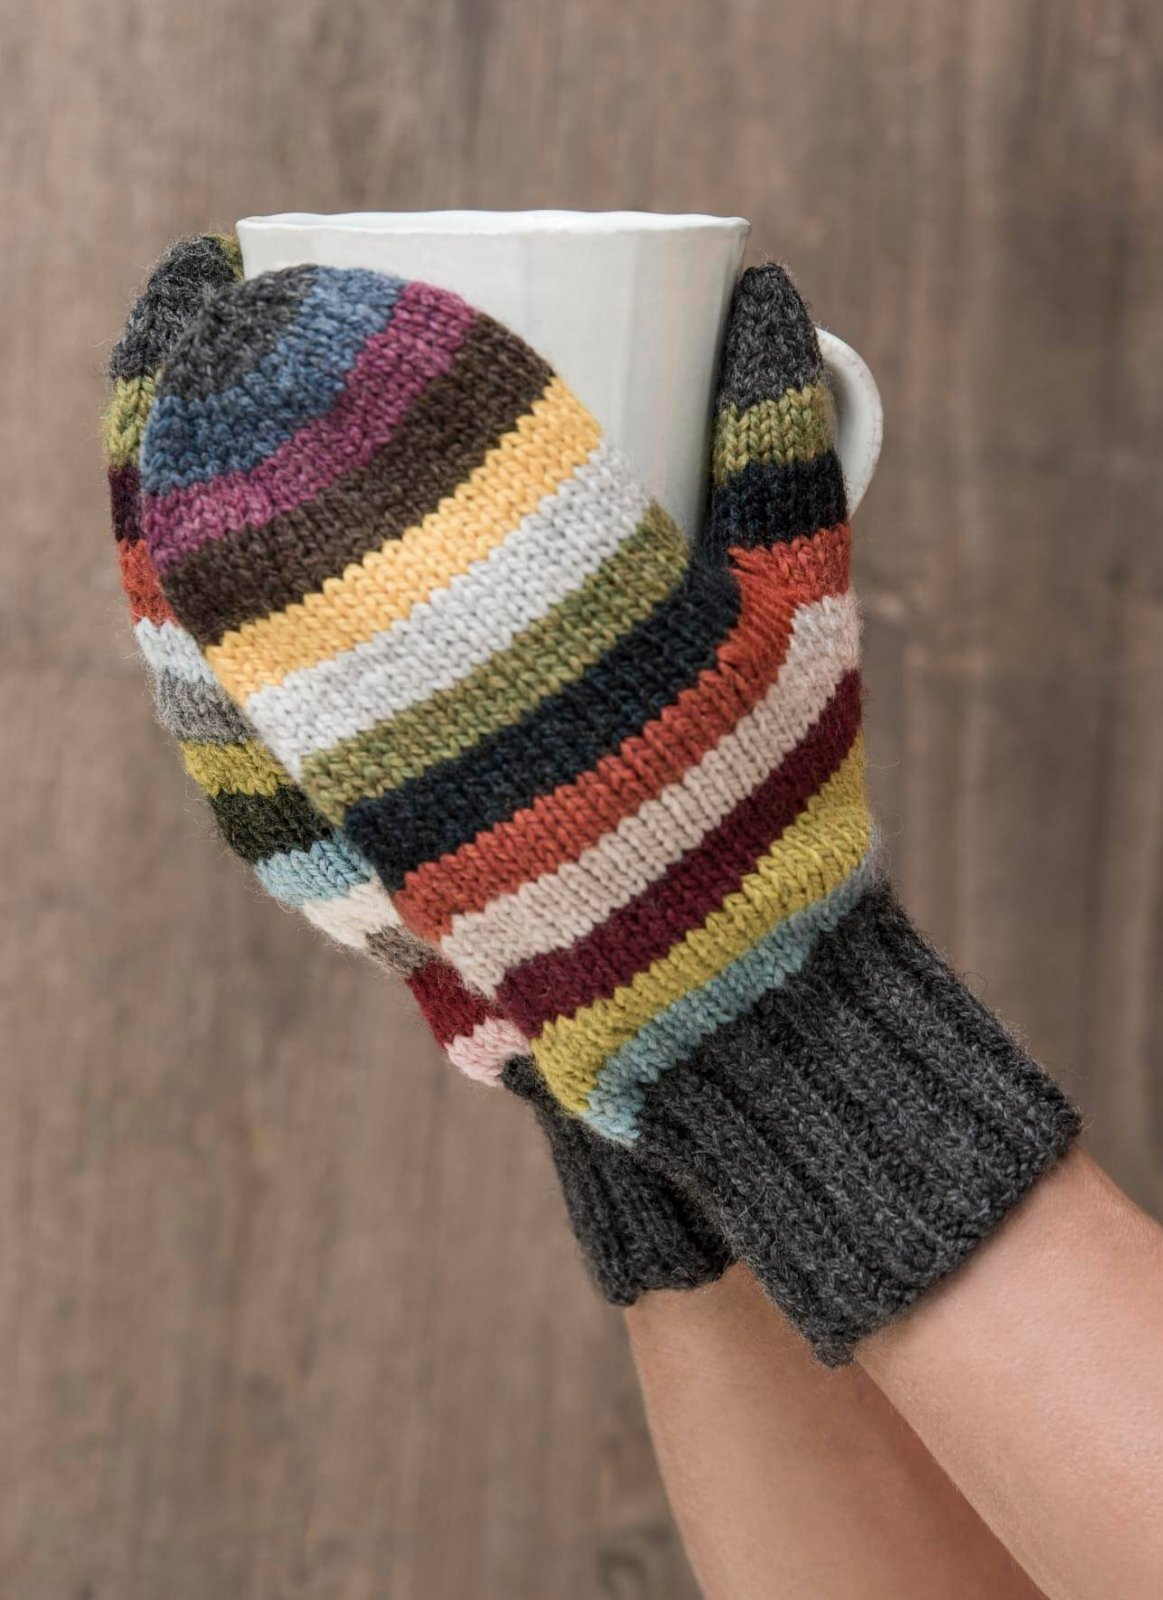 21 Color Mittens Kit by Blue Sky Fibers